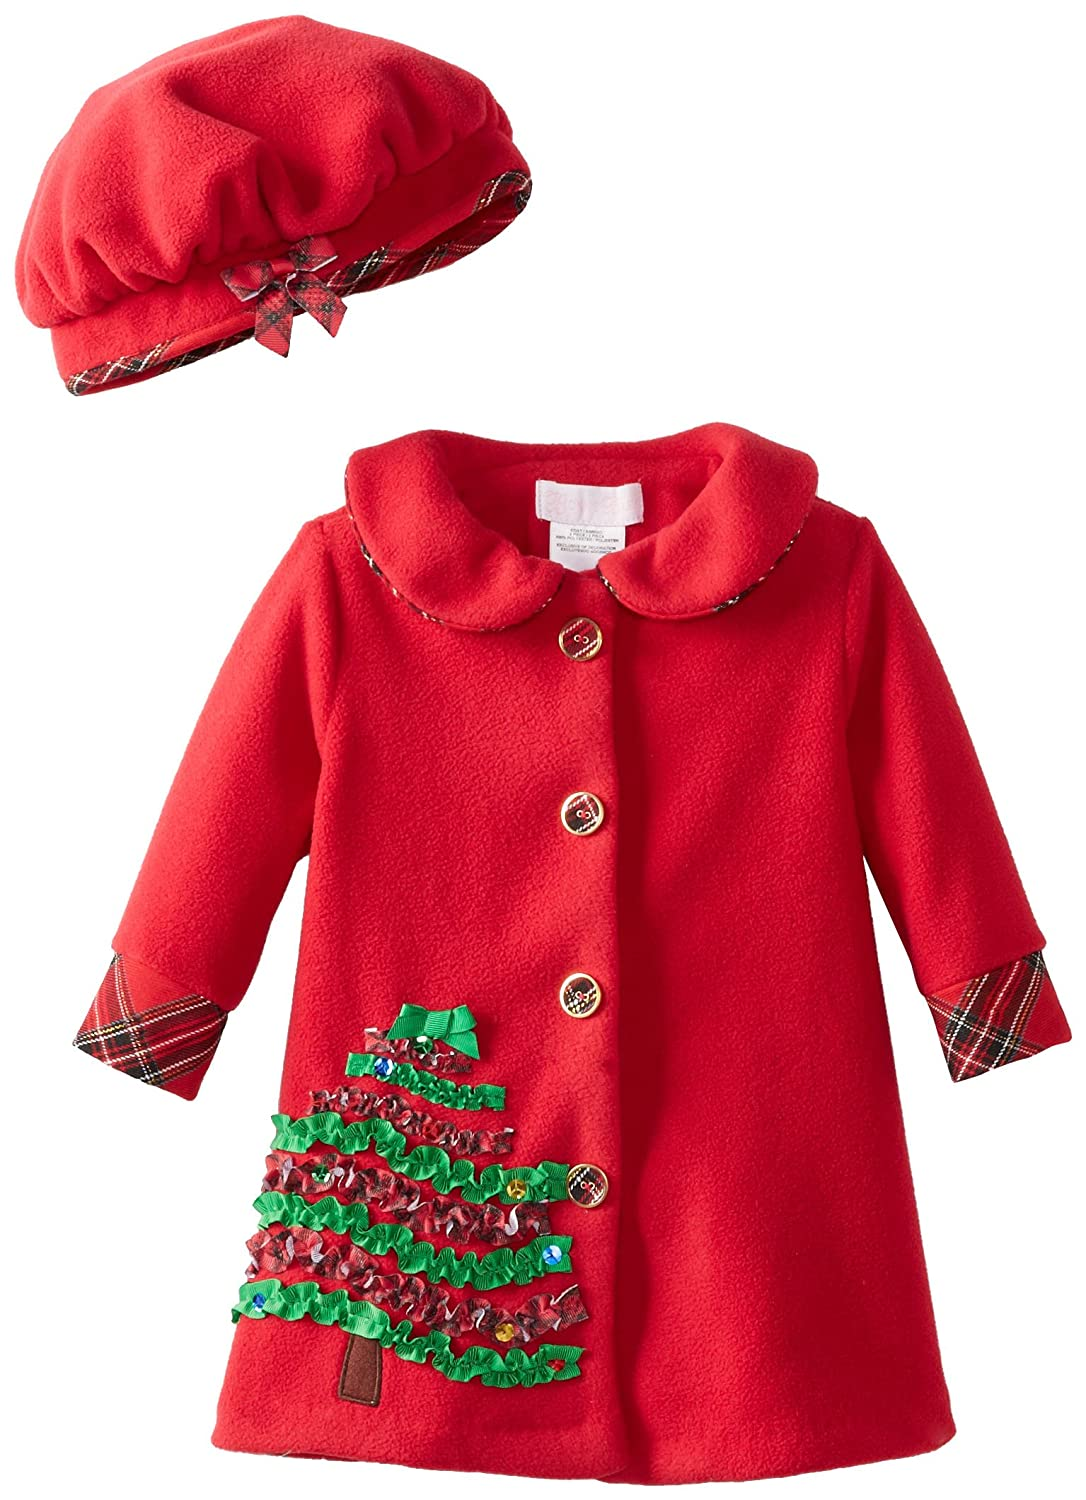 Amazon.com: Bonnie Baby Baby-Girls Infant Christmas Tree Applique ...